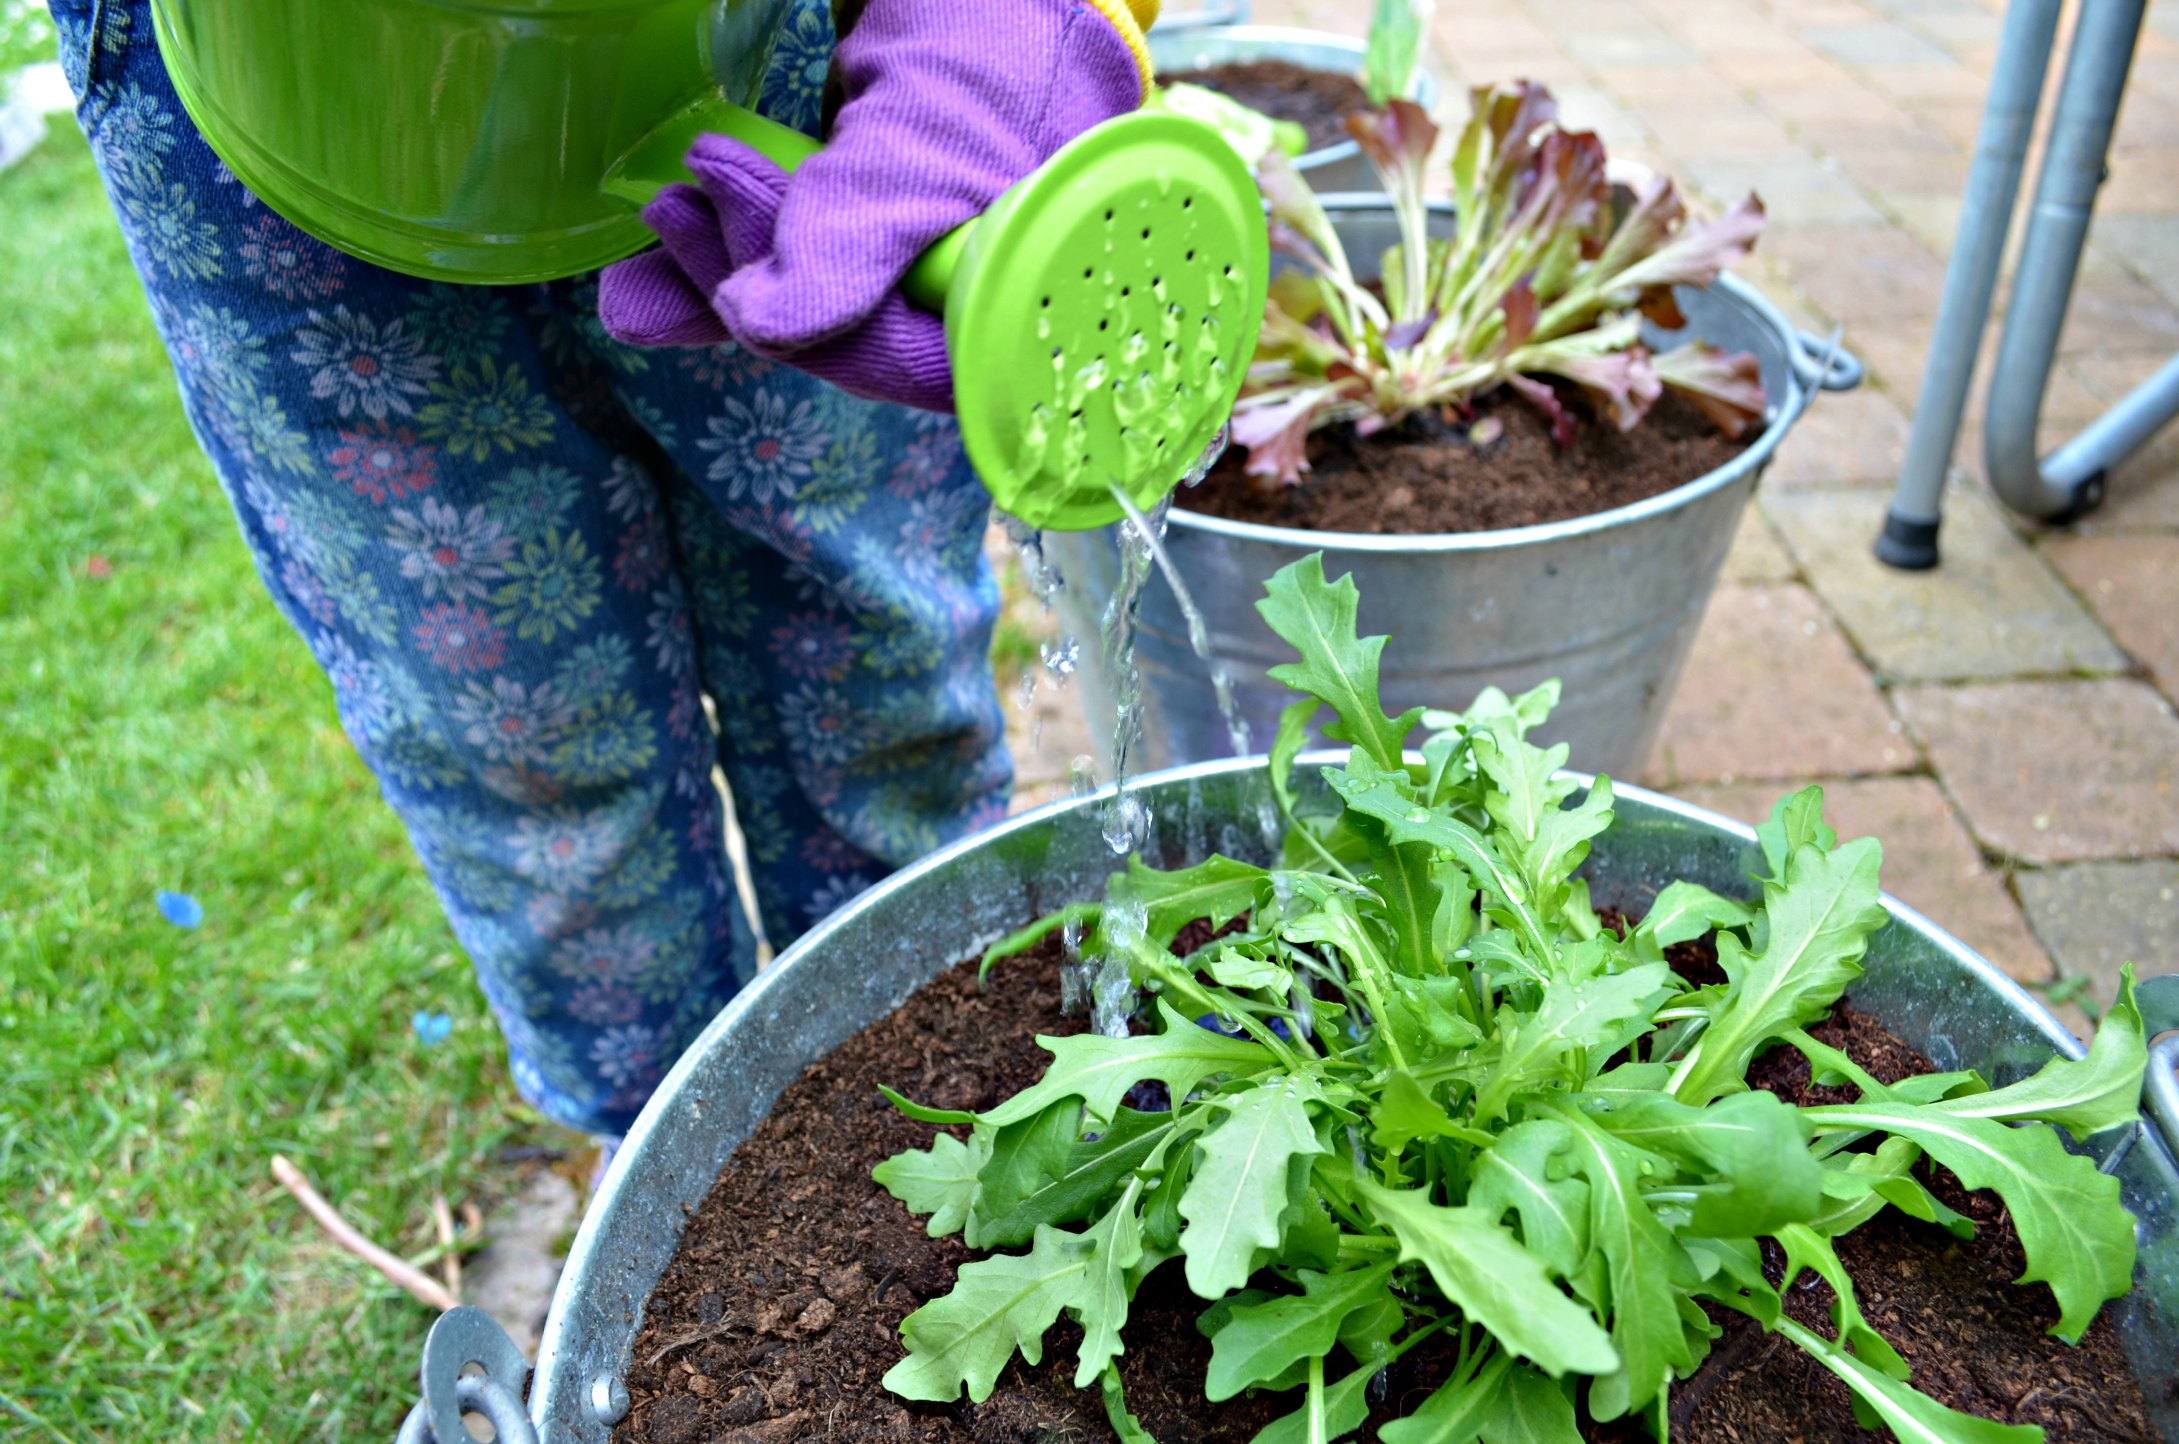 Seedlets review Gardening with children